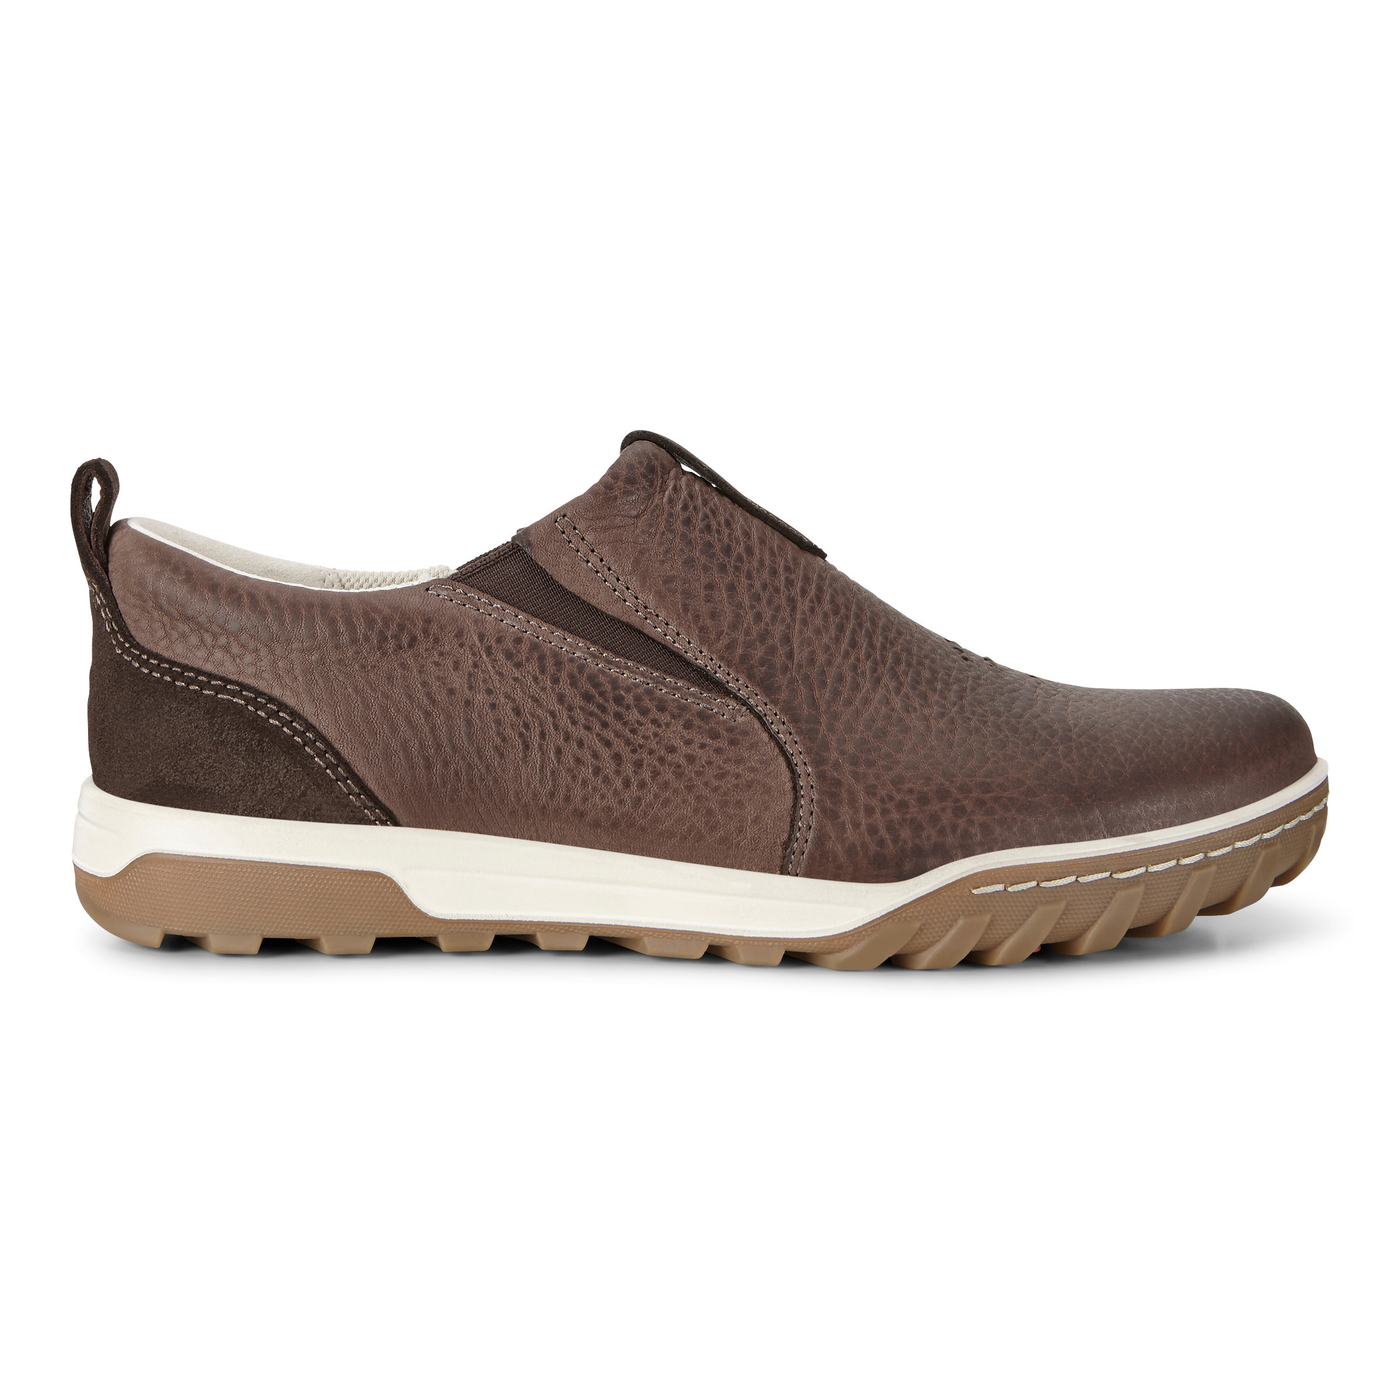 ECCO Mens Urban Lifestyle Slip